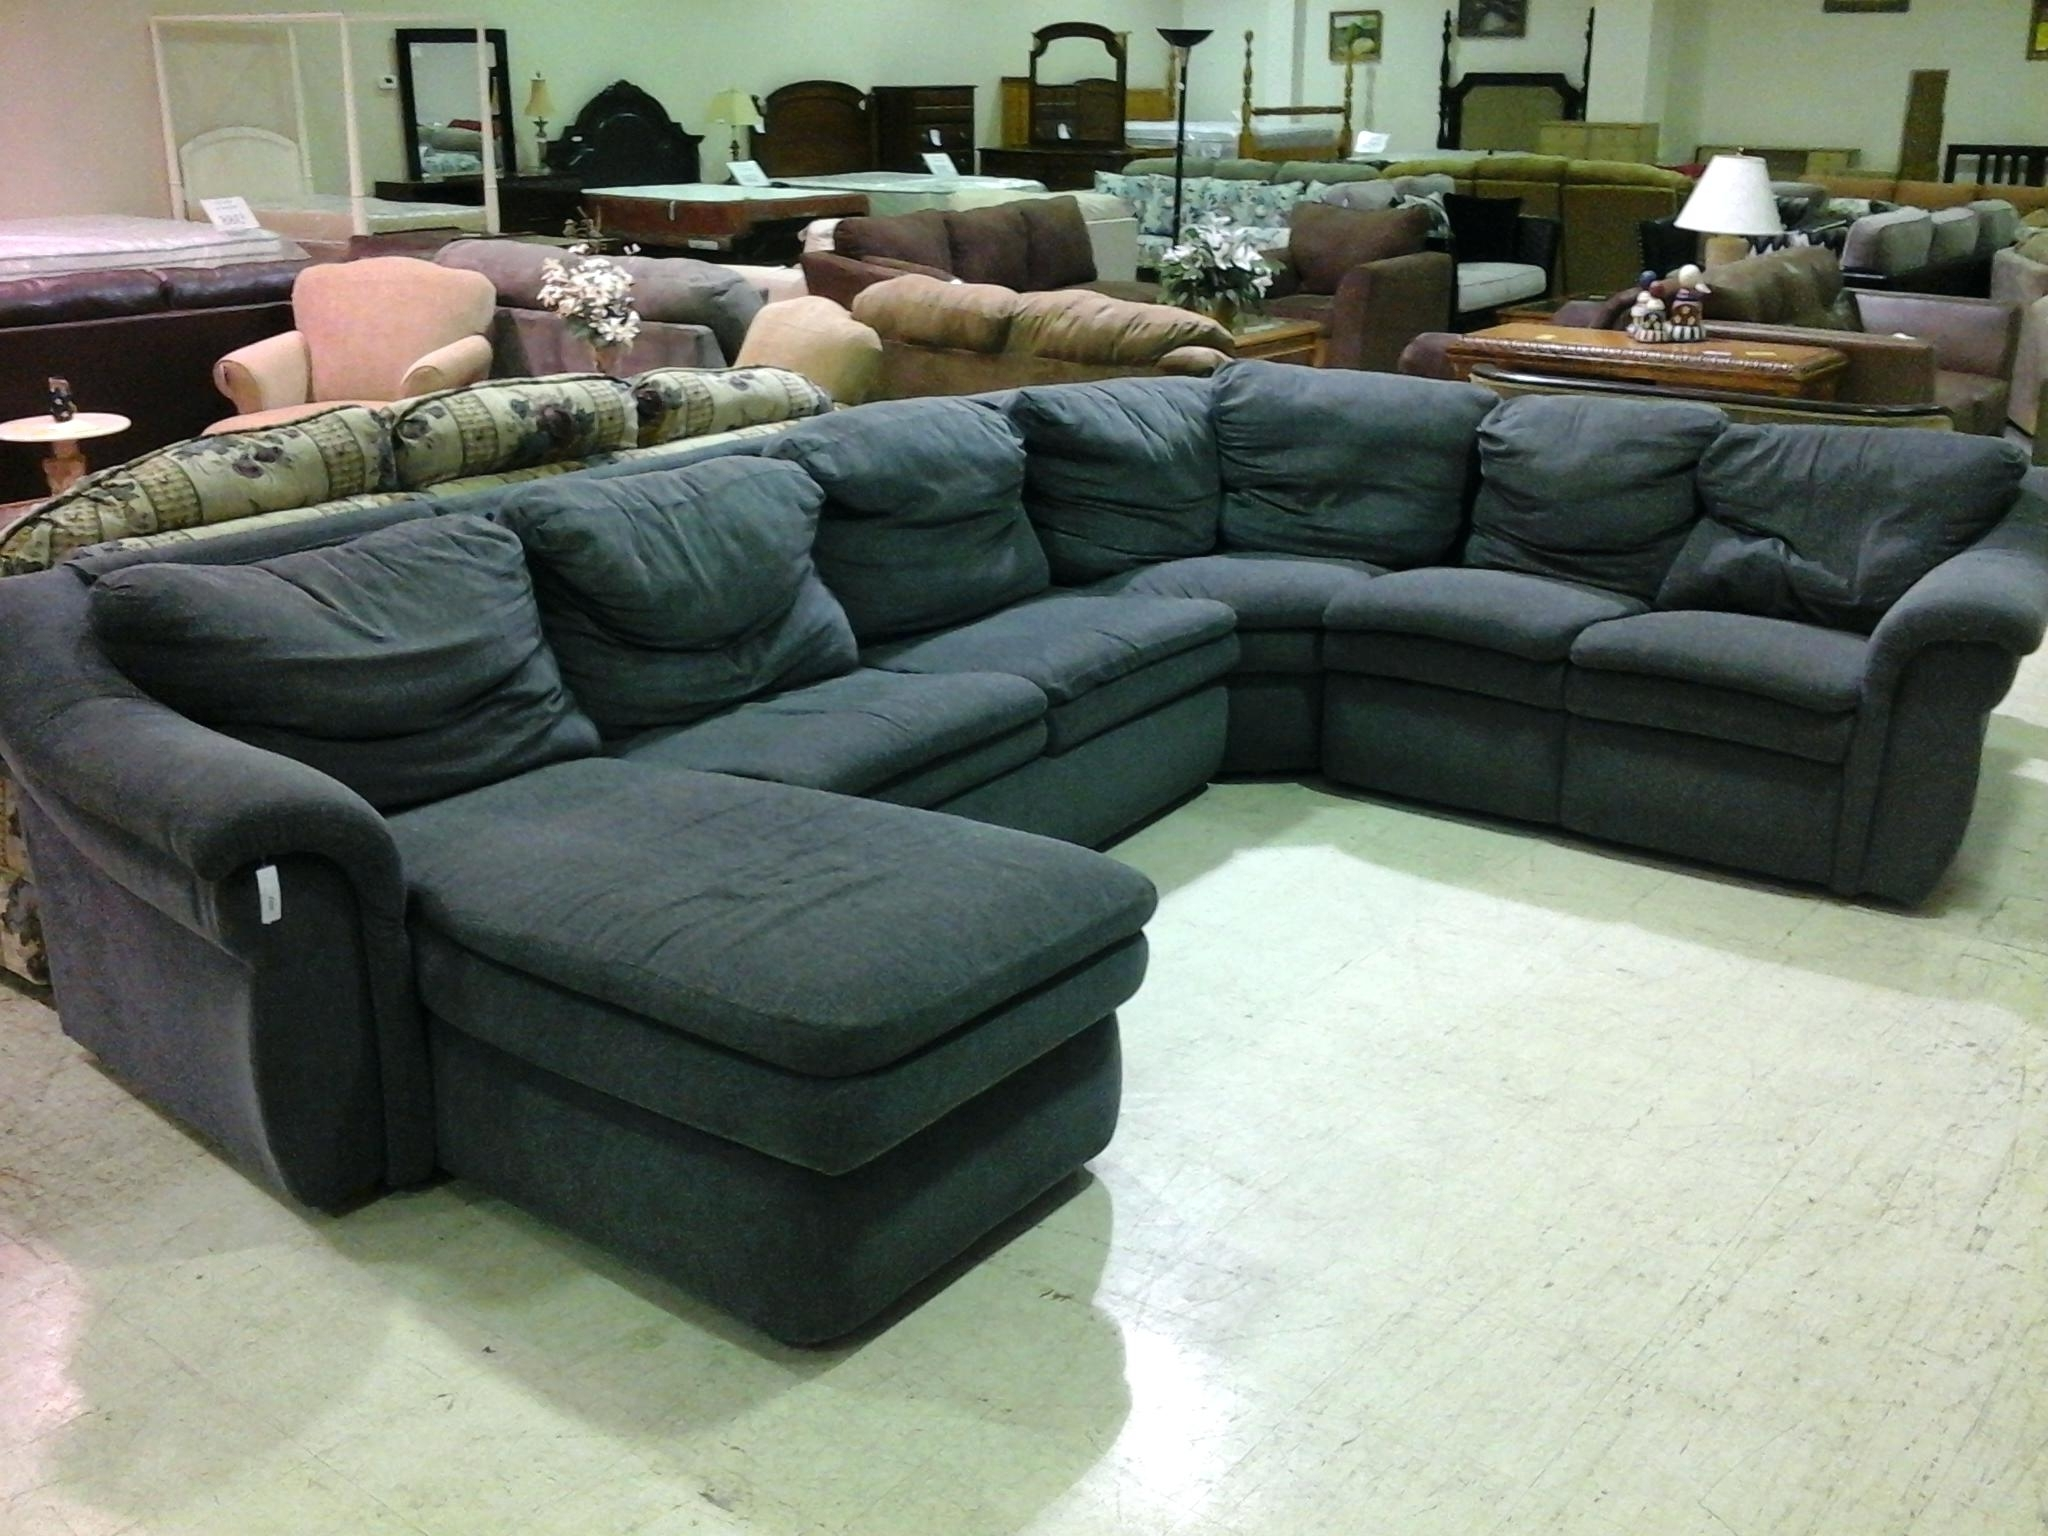 Clearance Sectional Sofas Intended For Well Known Sectional Sofa Sale Sa Couches For Near Me Liquidation Toronto (View 20 of 20)